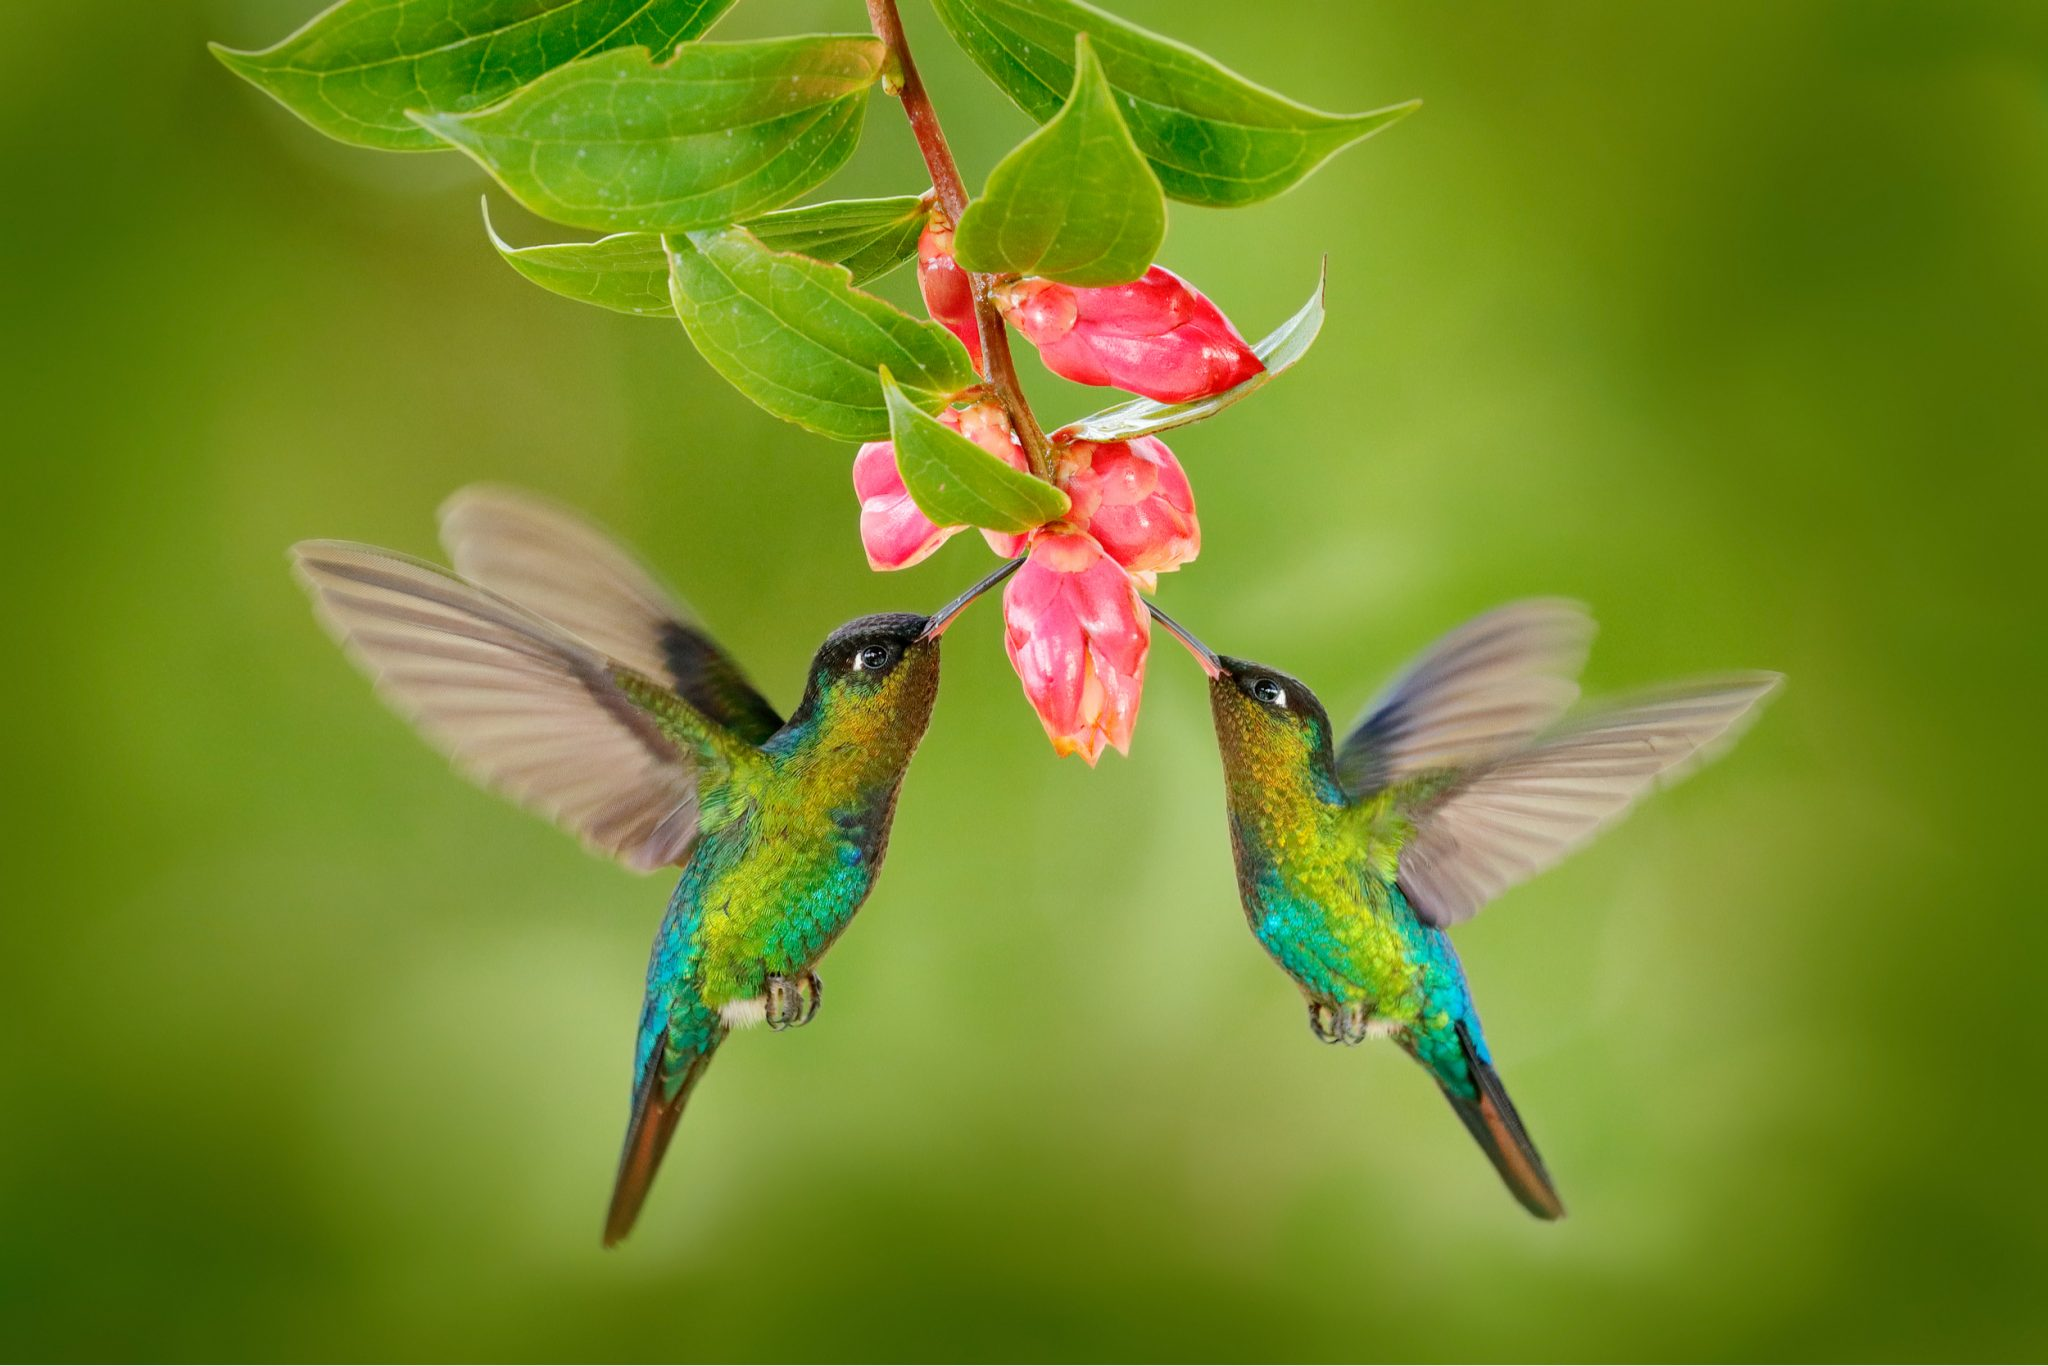 How to Attract Hummingbirds to Your Backyard